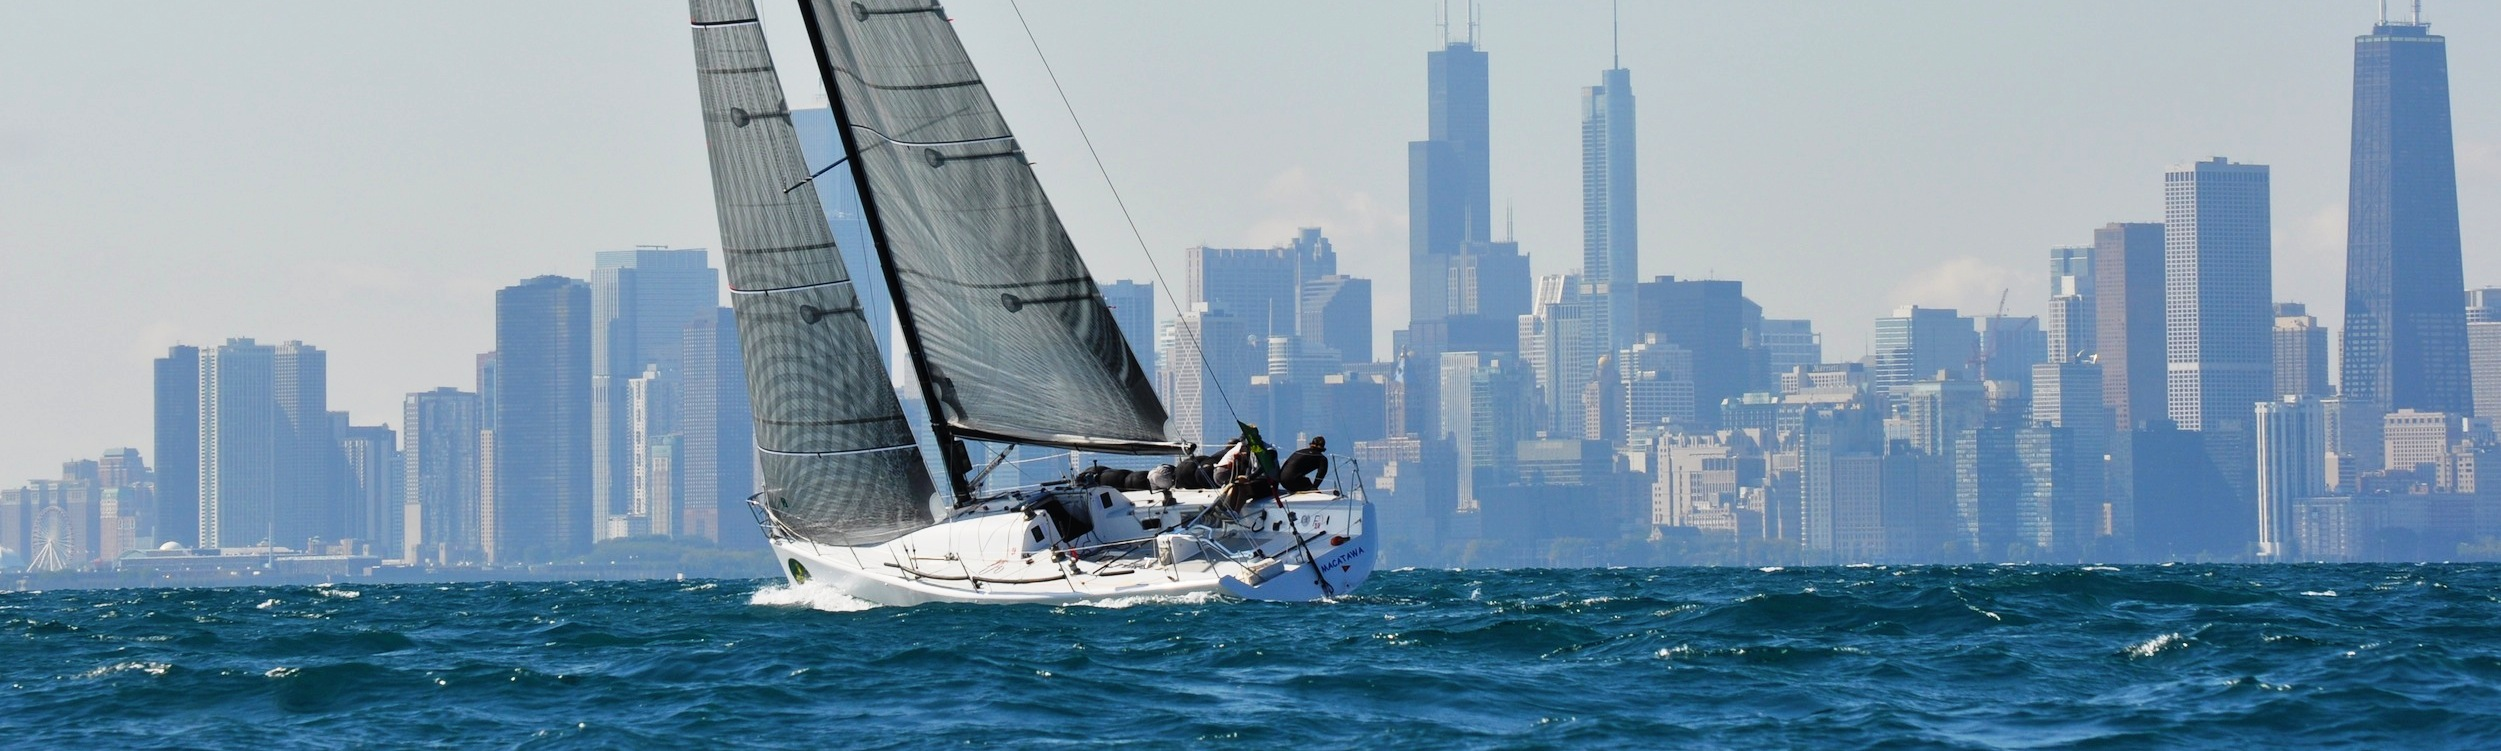 yacht-racing-USA1